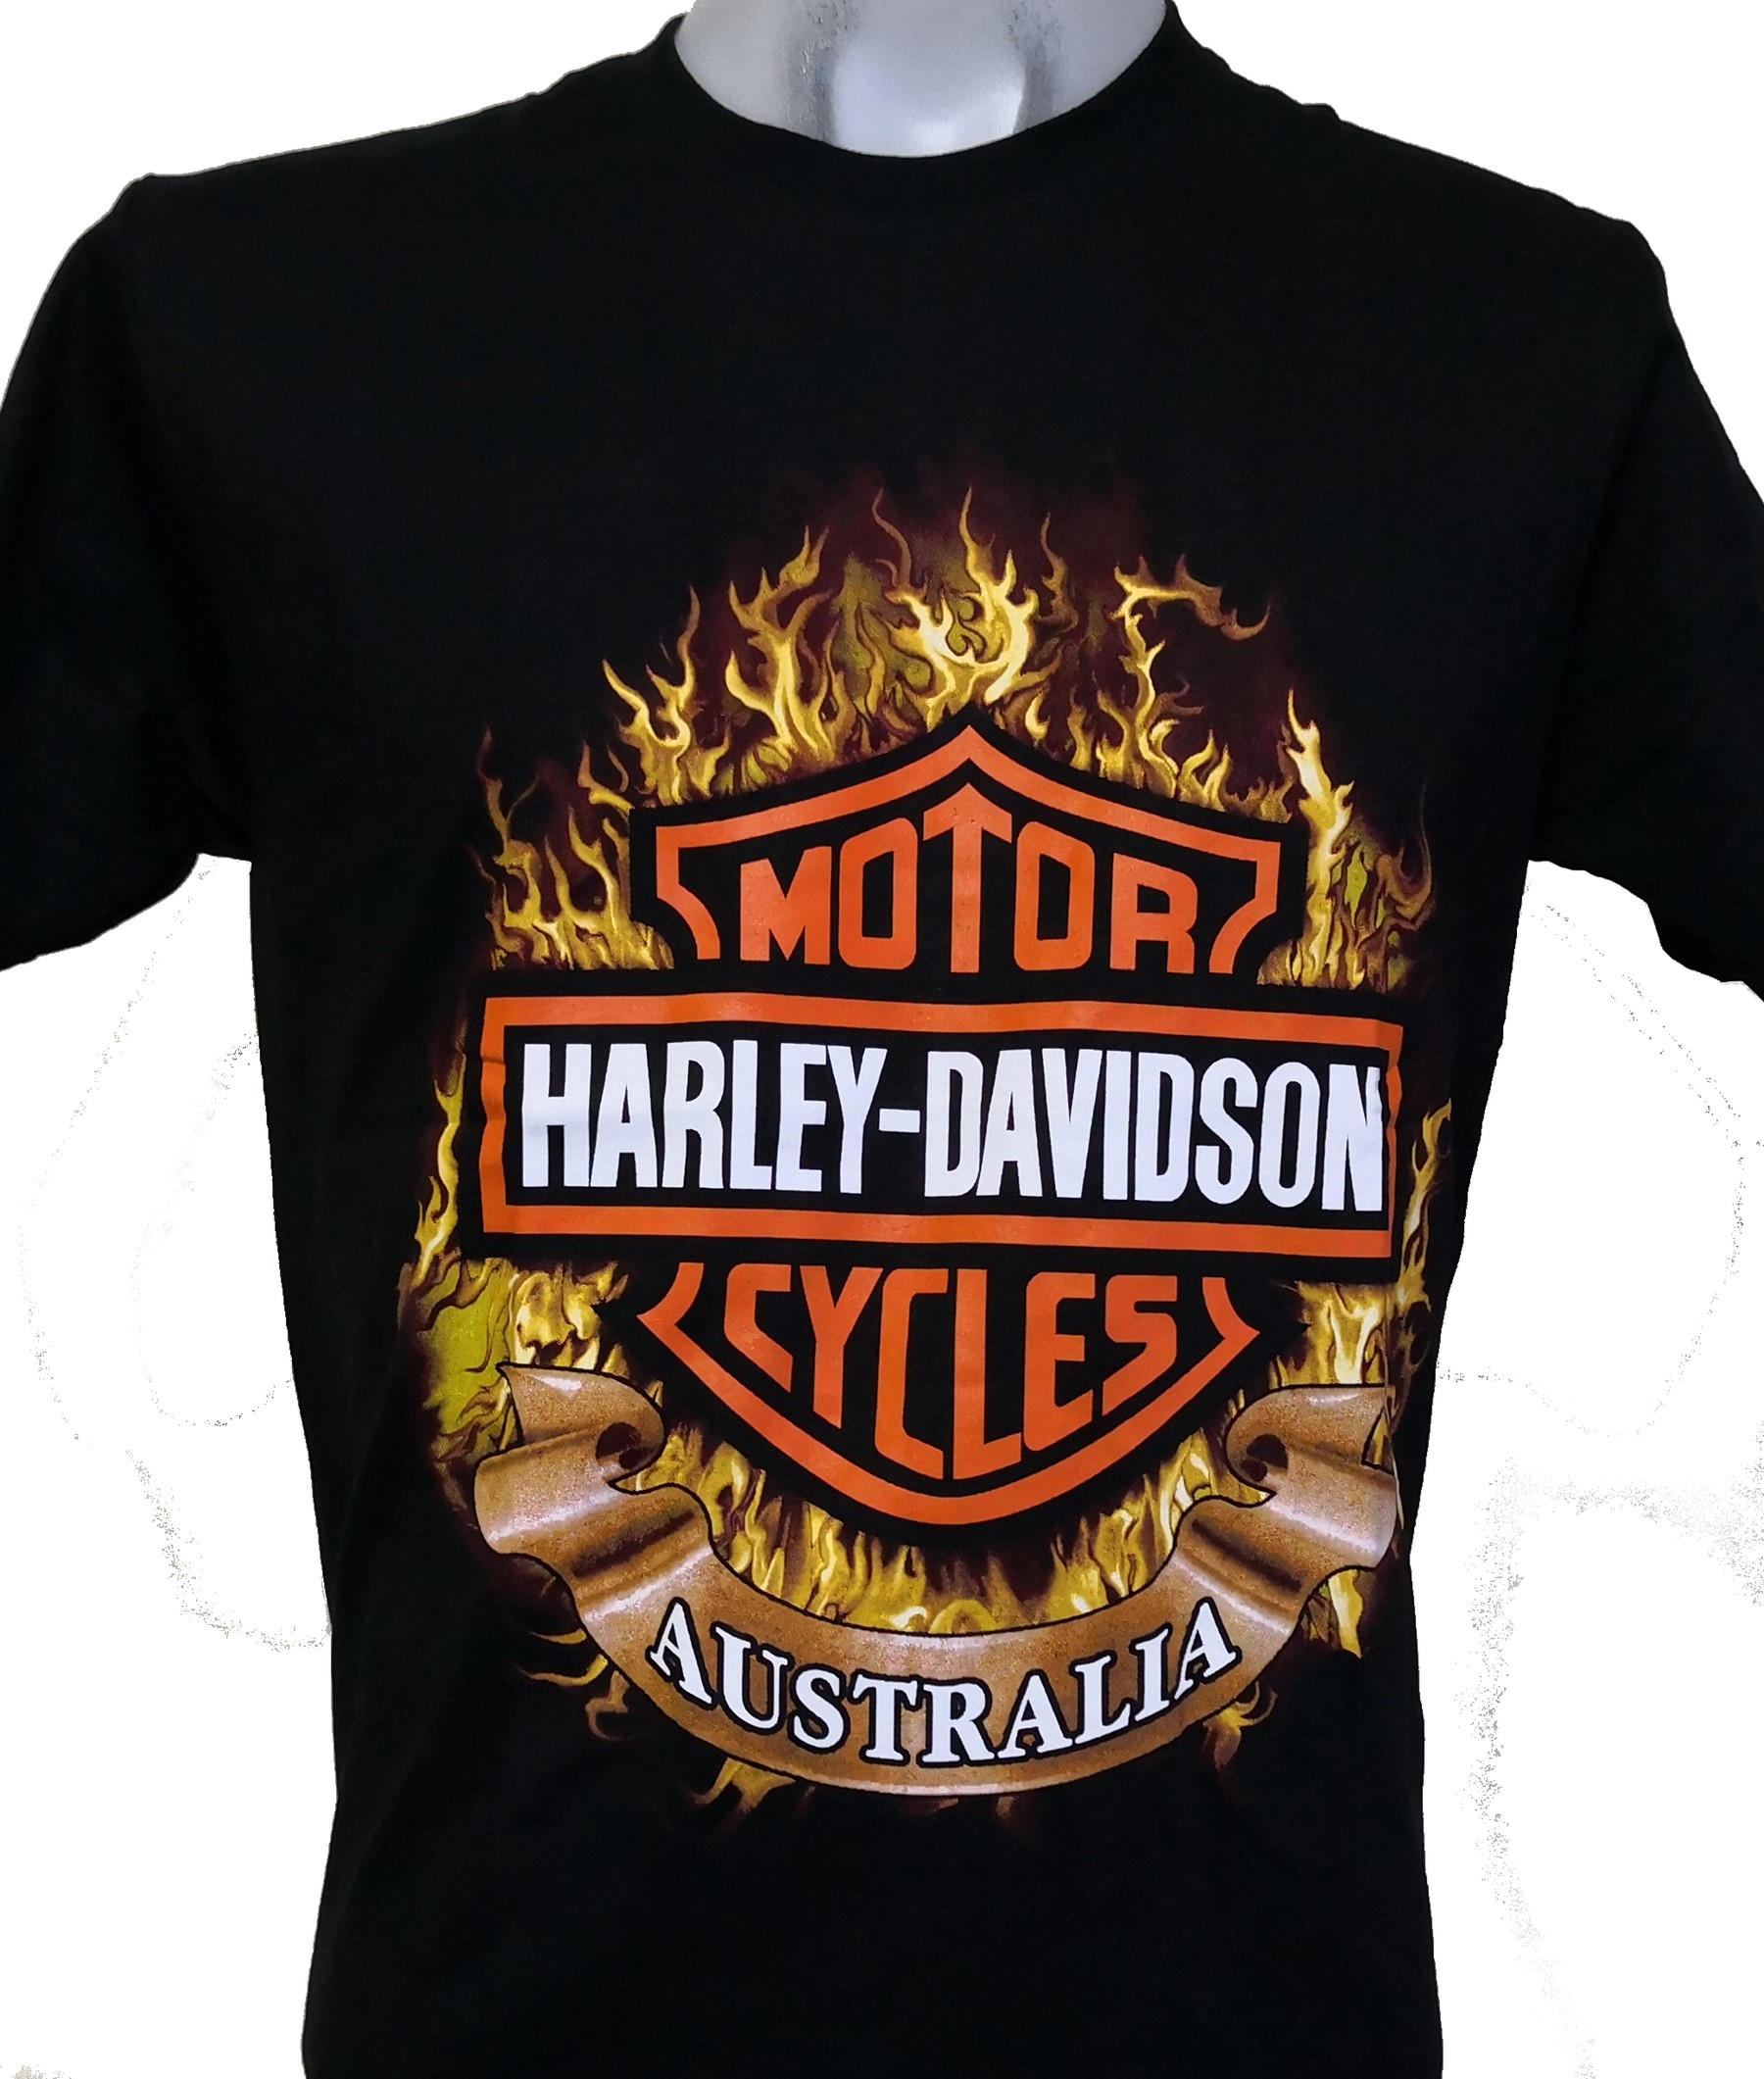 harley davidson t shirt australia size m roxxbkk. Black Bedroom Furniture Sets. Home Design Ideas